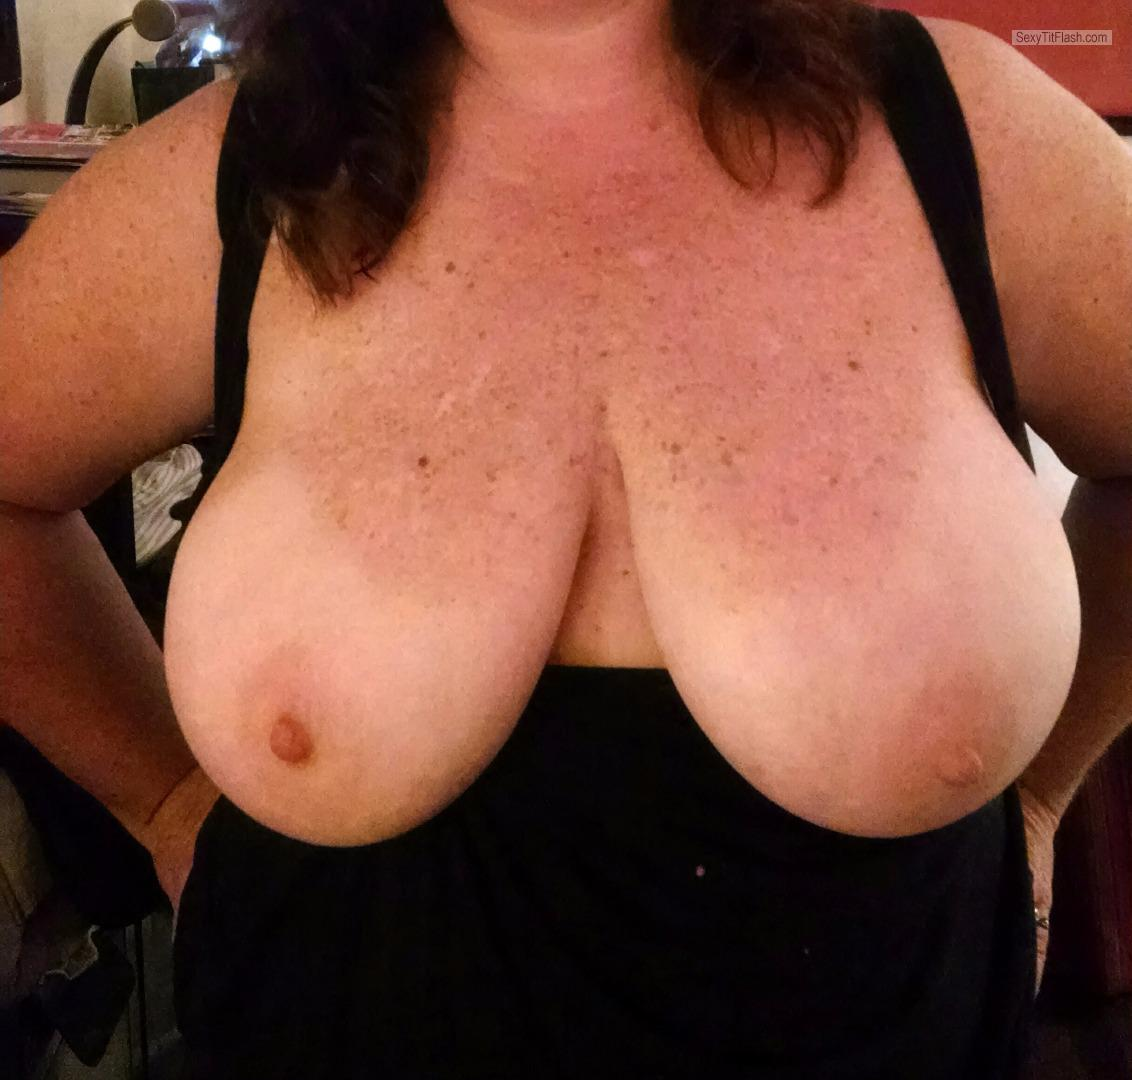 Tit Flash: My Tanlined Very Big Tits - Katherine from United Kingdom